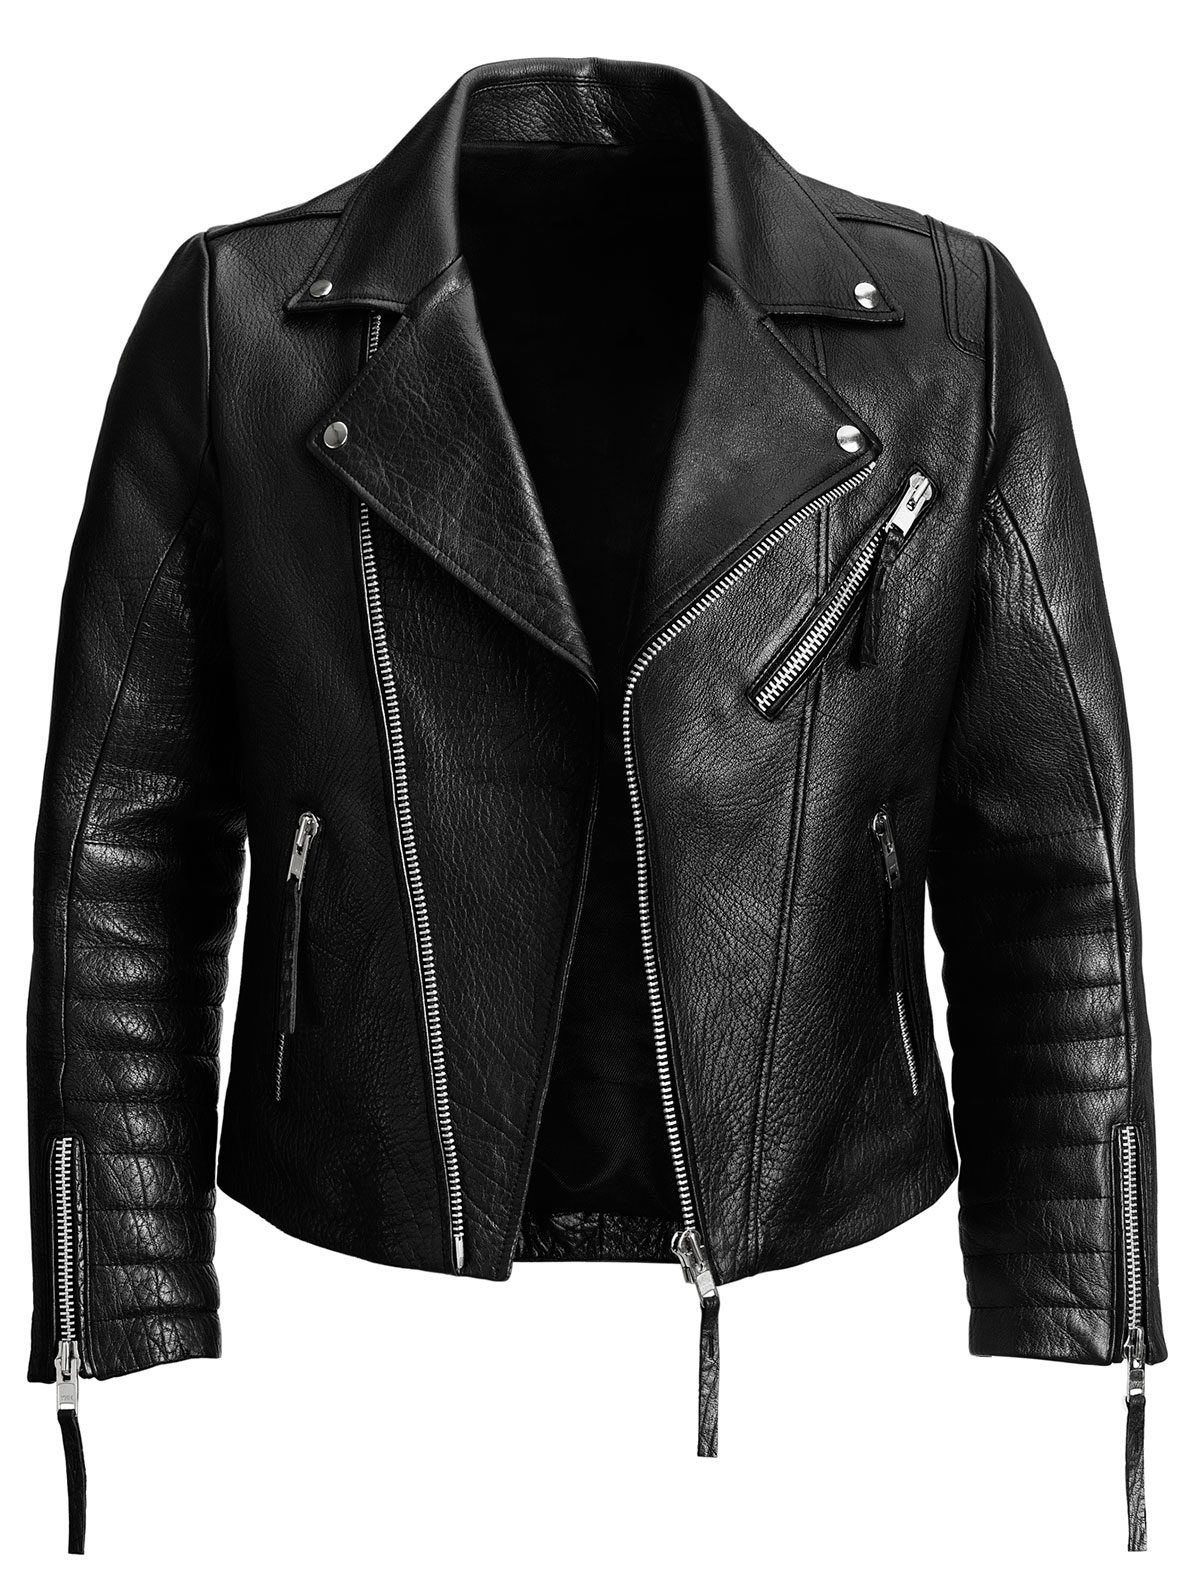 Leather Biker Jacket from H&M – A Must-Have for any Man's Wardrobe